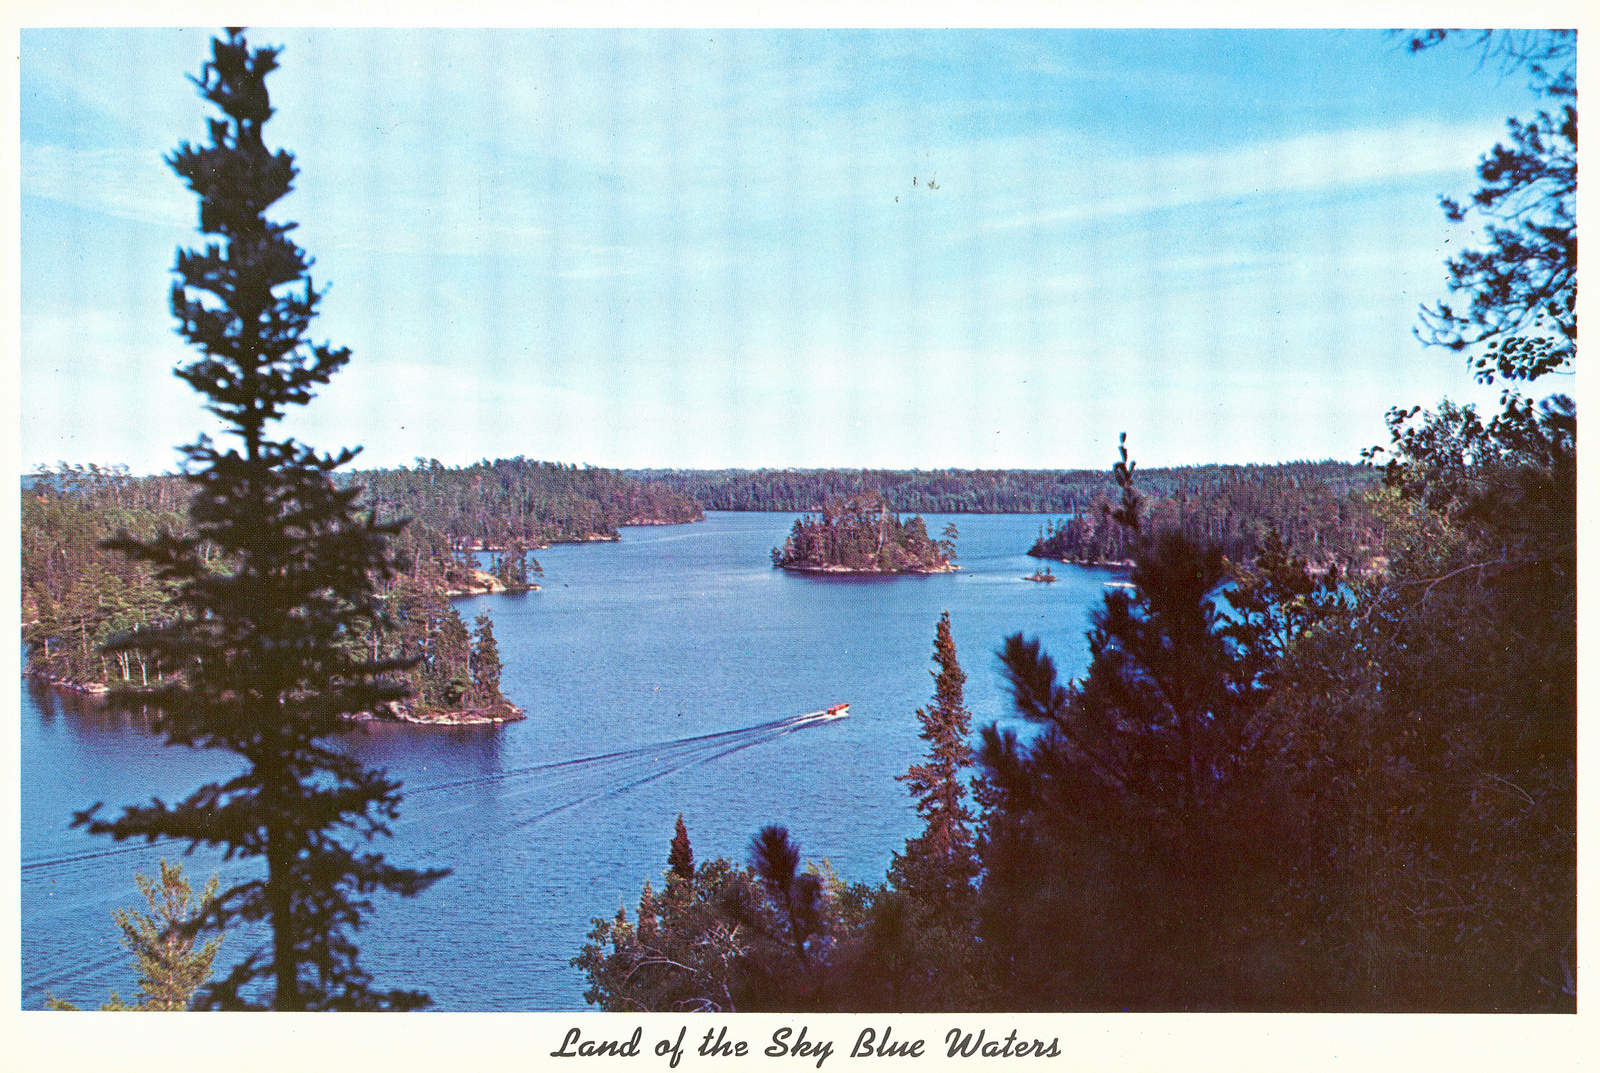 History Speaks: The Boundary Waters